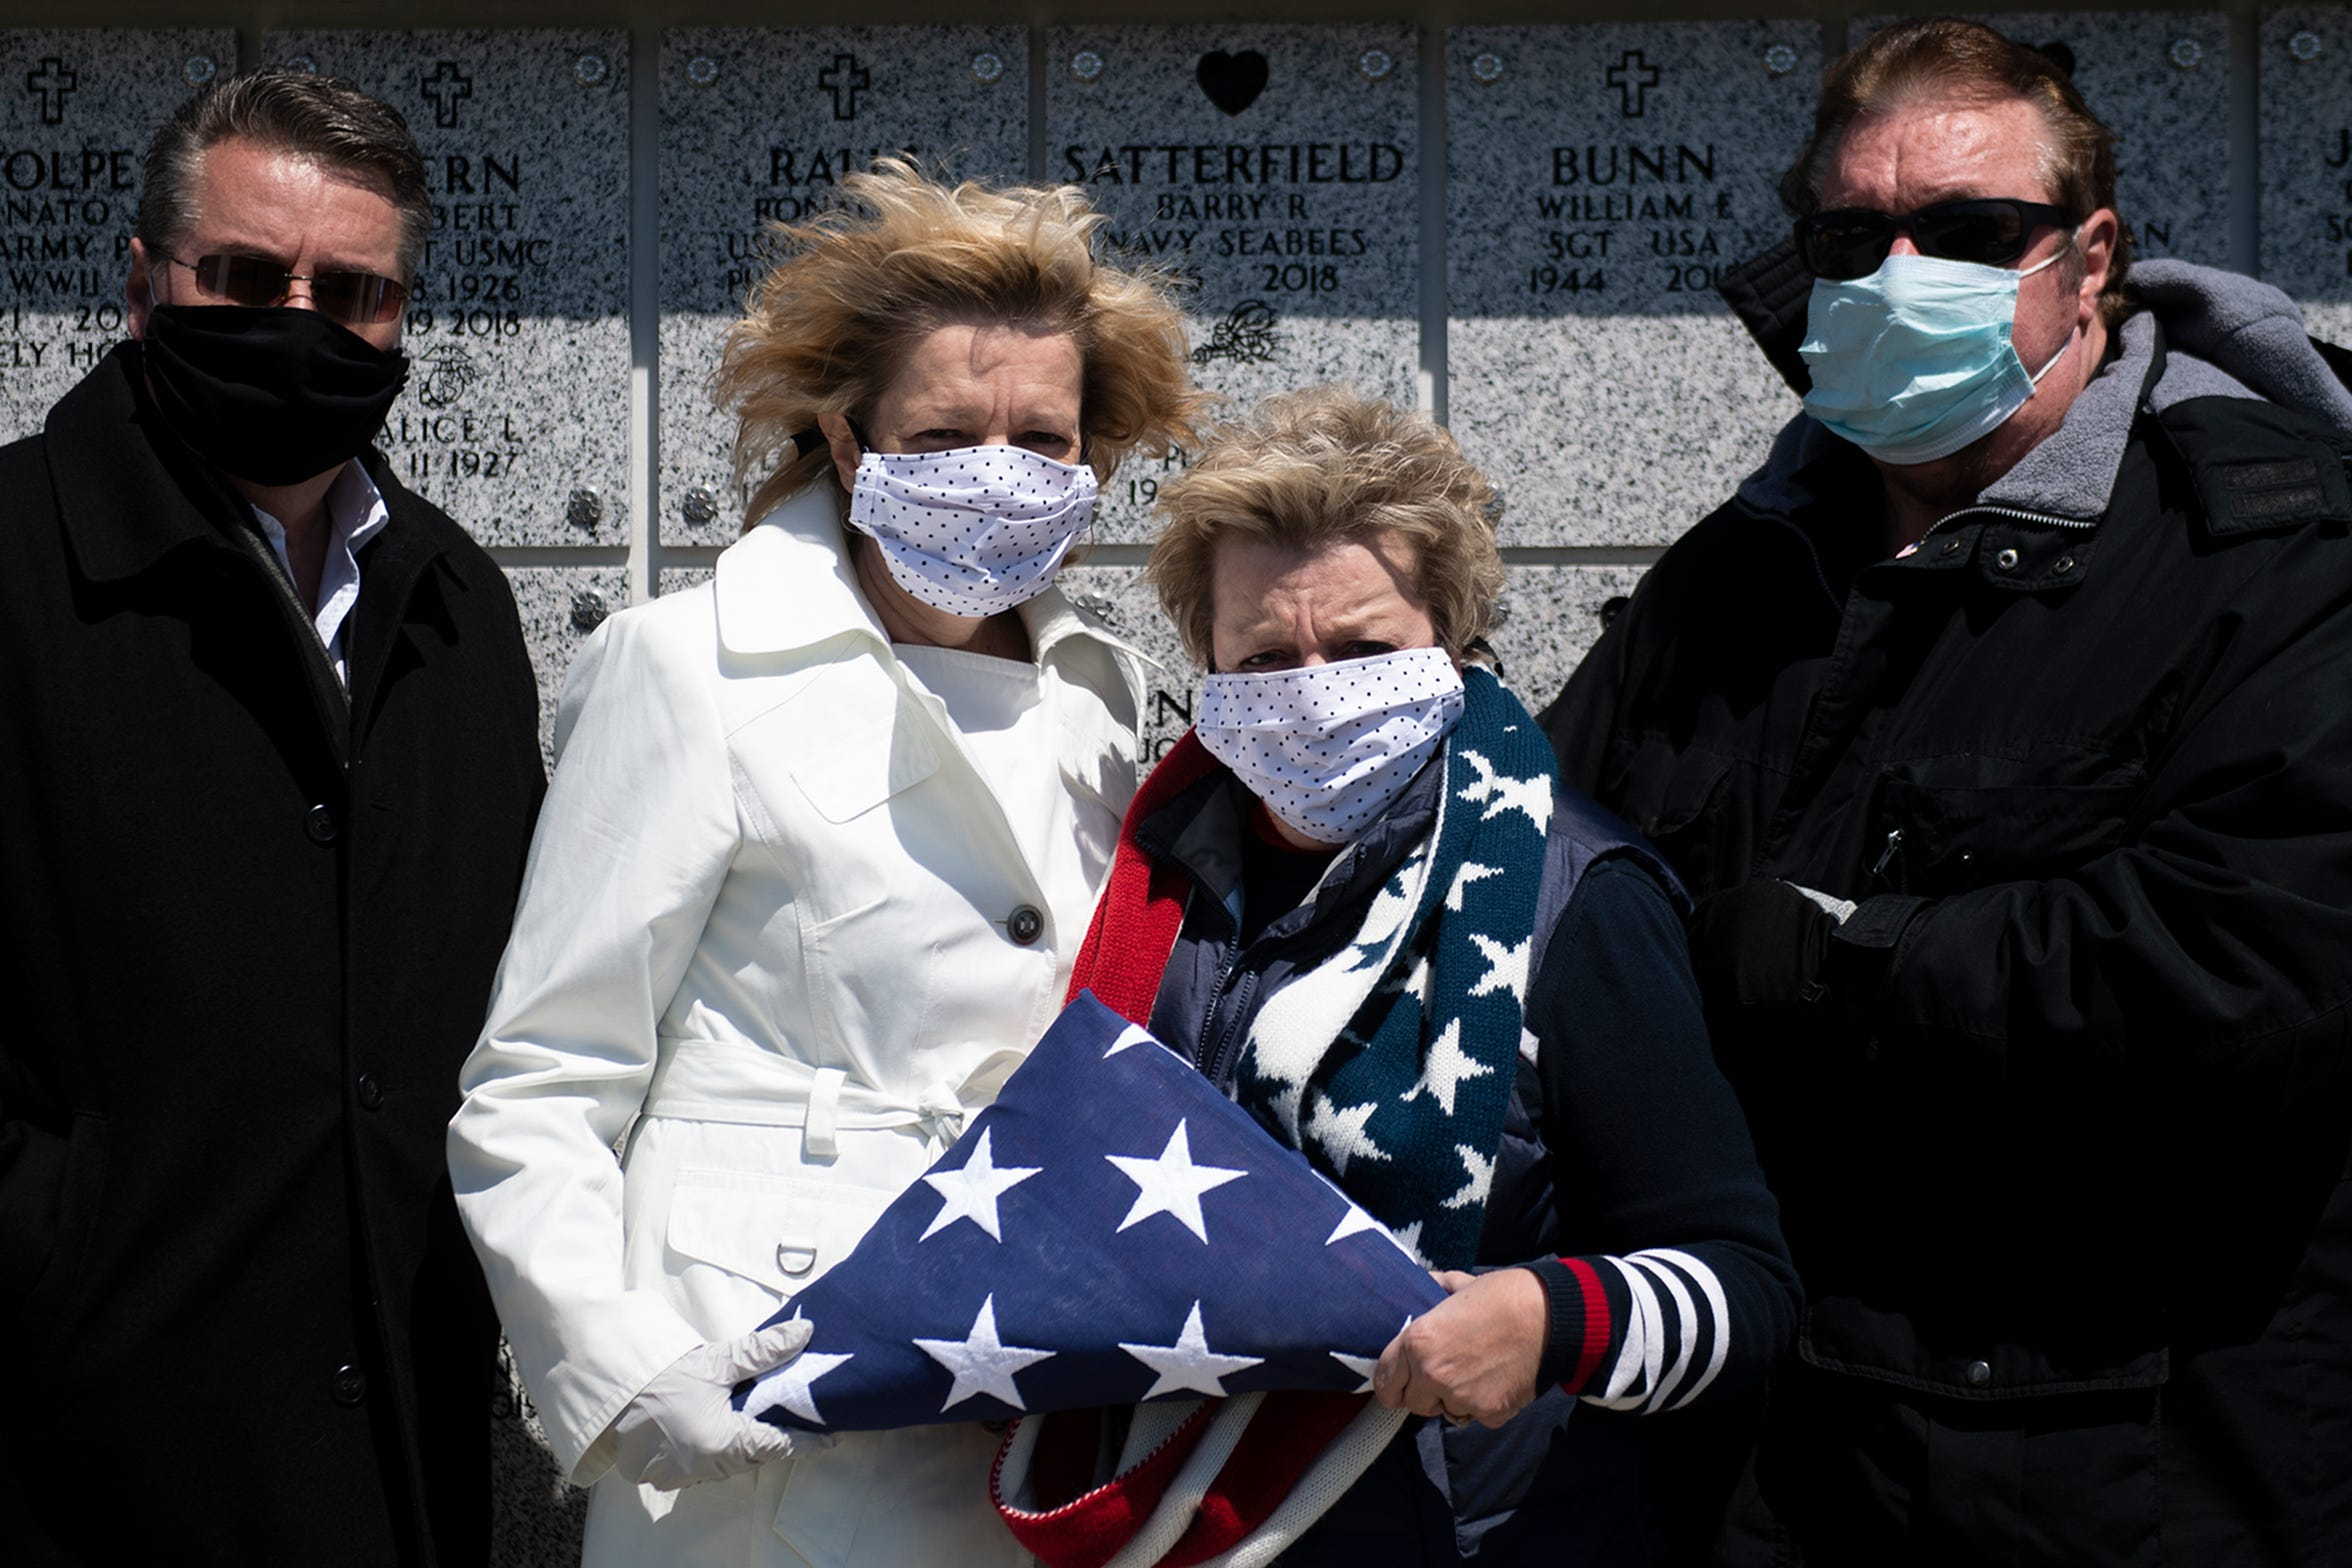 "Siblings Kirk Taggart, from left, Lisa Scanlon, Lynn Wright and Scott Taggart wear masks during a funeral service for their father Herman Taggart Wednesday, April 22, 2020 at Gloucester County Veterans Cemetery in Williamstown, N.J. Herman Taggart, 92, was a Navy veteran who served in World War II. ""The Taggart family is known for being fun loving,"" said Scott Taggart while discussing the inability to celebrate their father's life together. ""We'd normally be having a few cocktails at this point,"" he said."